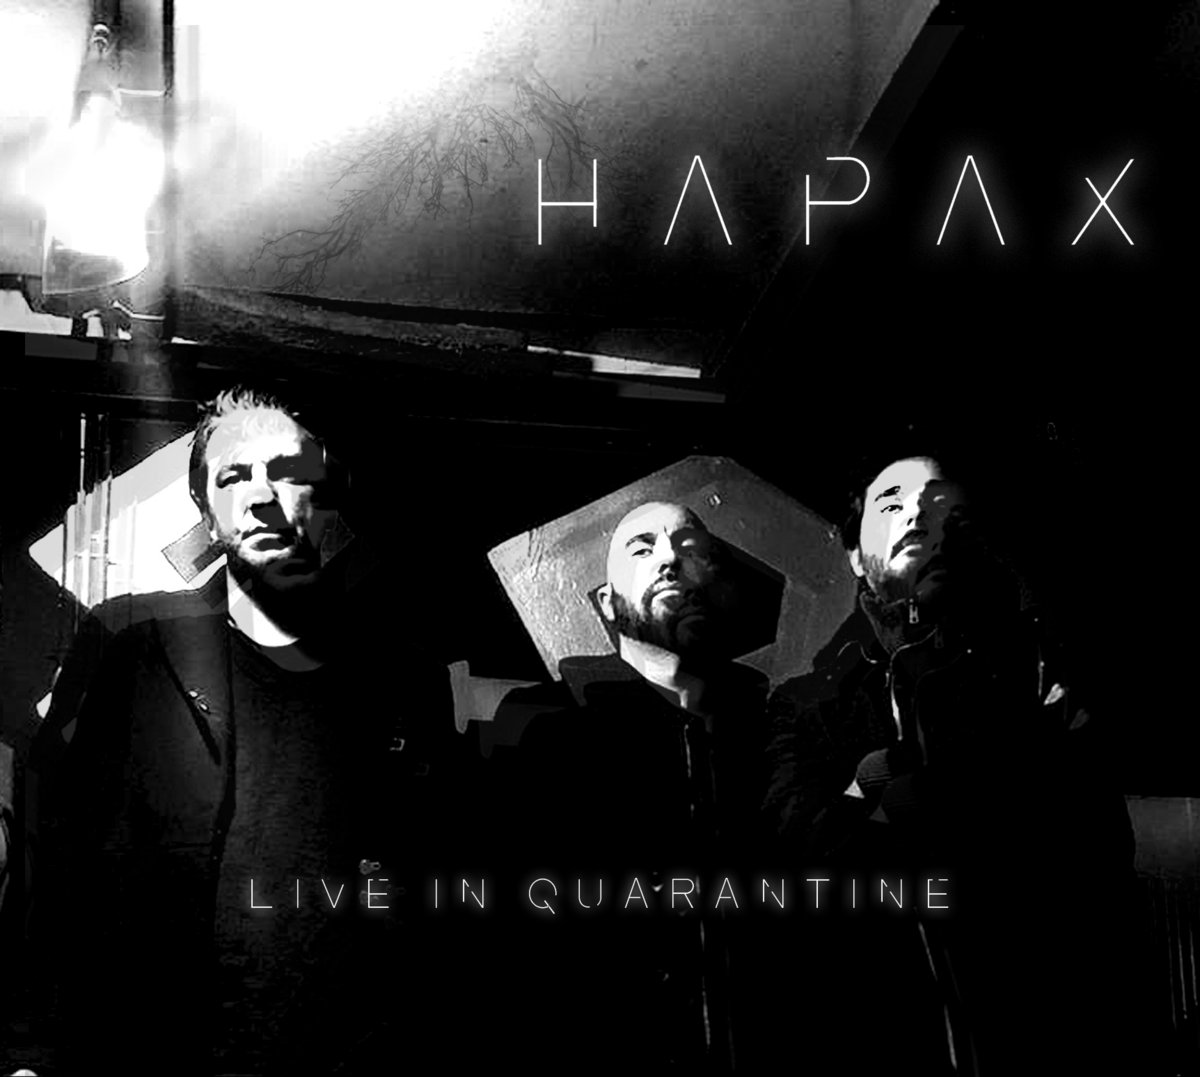 Hapax-Live In Quarantine-Limited Edition-CD-FLAC-2020-AMOK